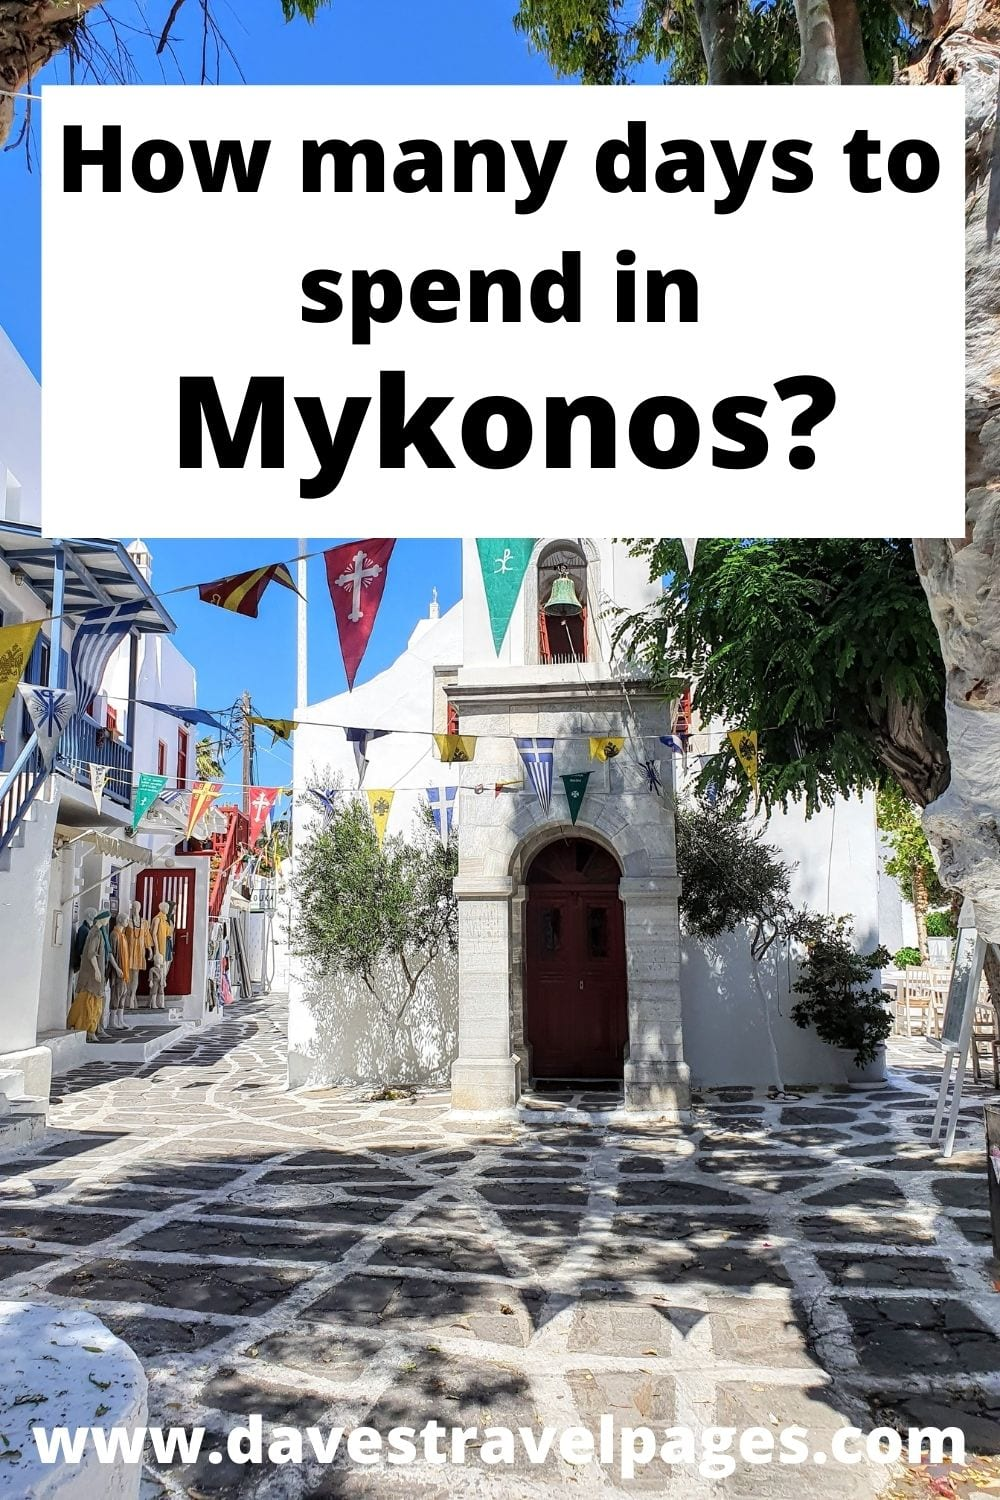 3 days is about the best amount of time to spend in Mykonos